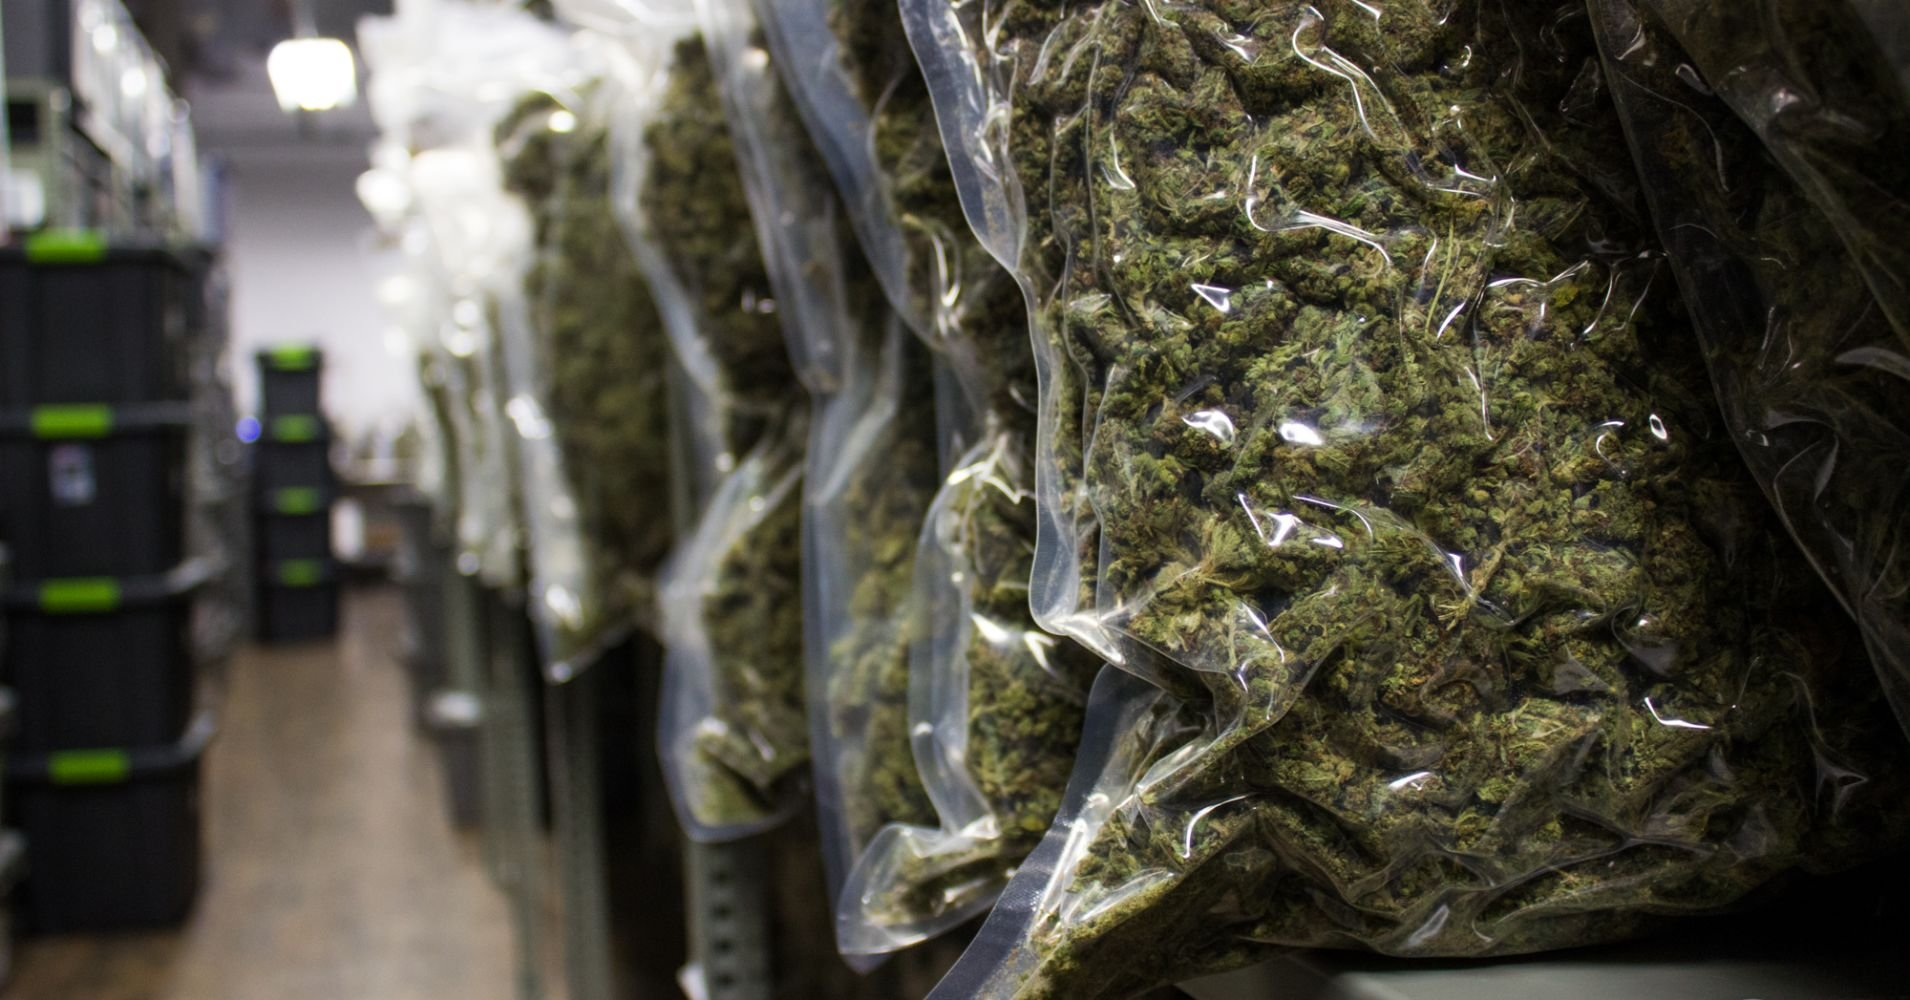 Marijuana stocks could see a midterm boost if Michigan votes yes